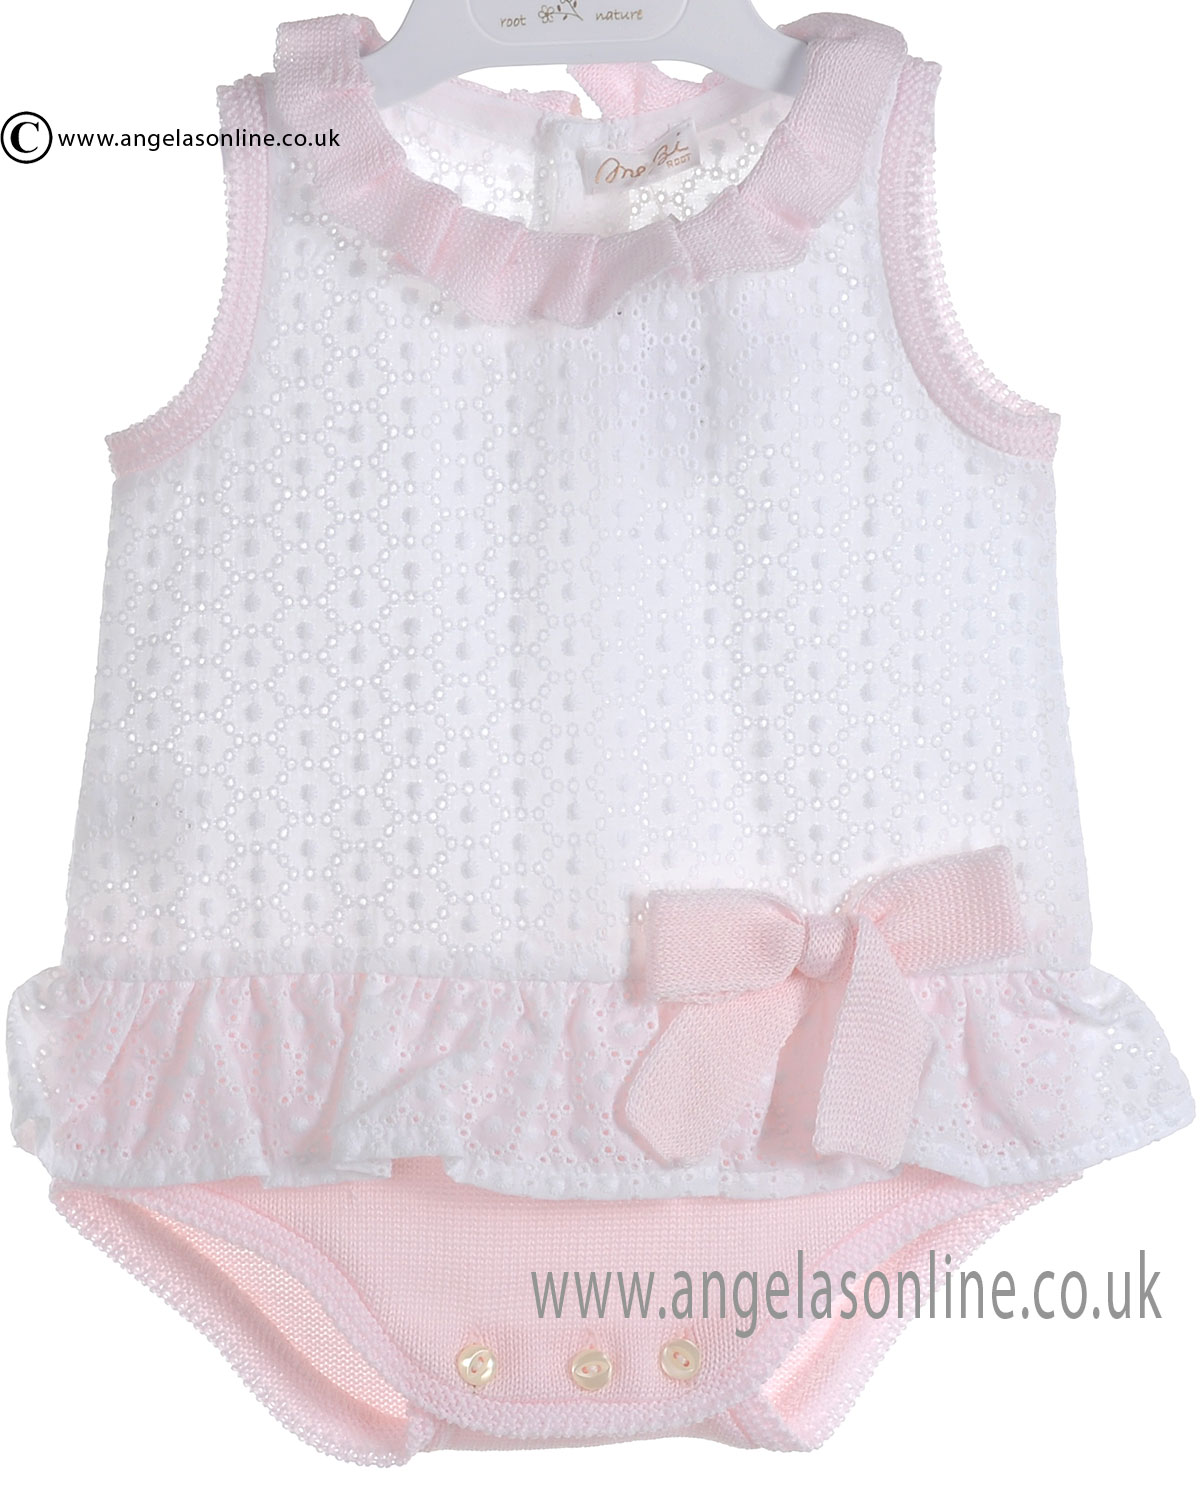 Mebi Baby Girls White and Pink All in One Romper 1386/004